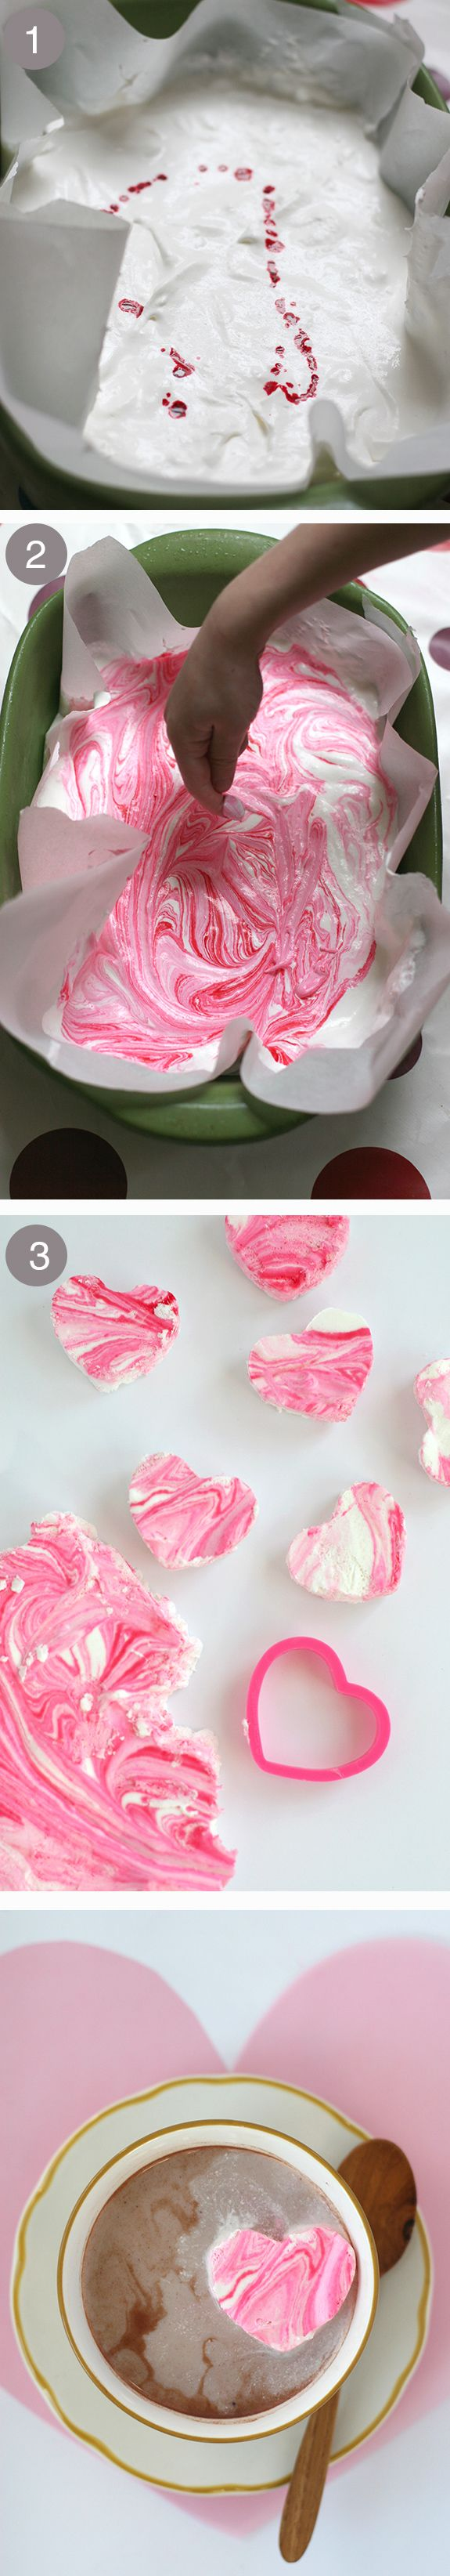 #DIY peppermint marshmallows in the sweetest of shapes